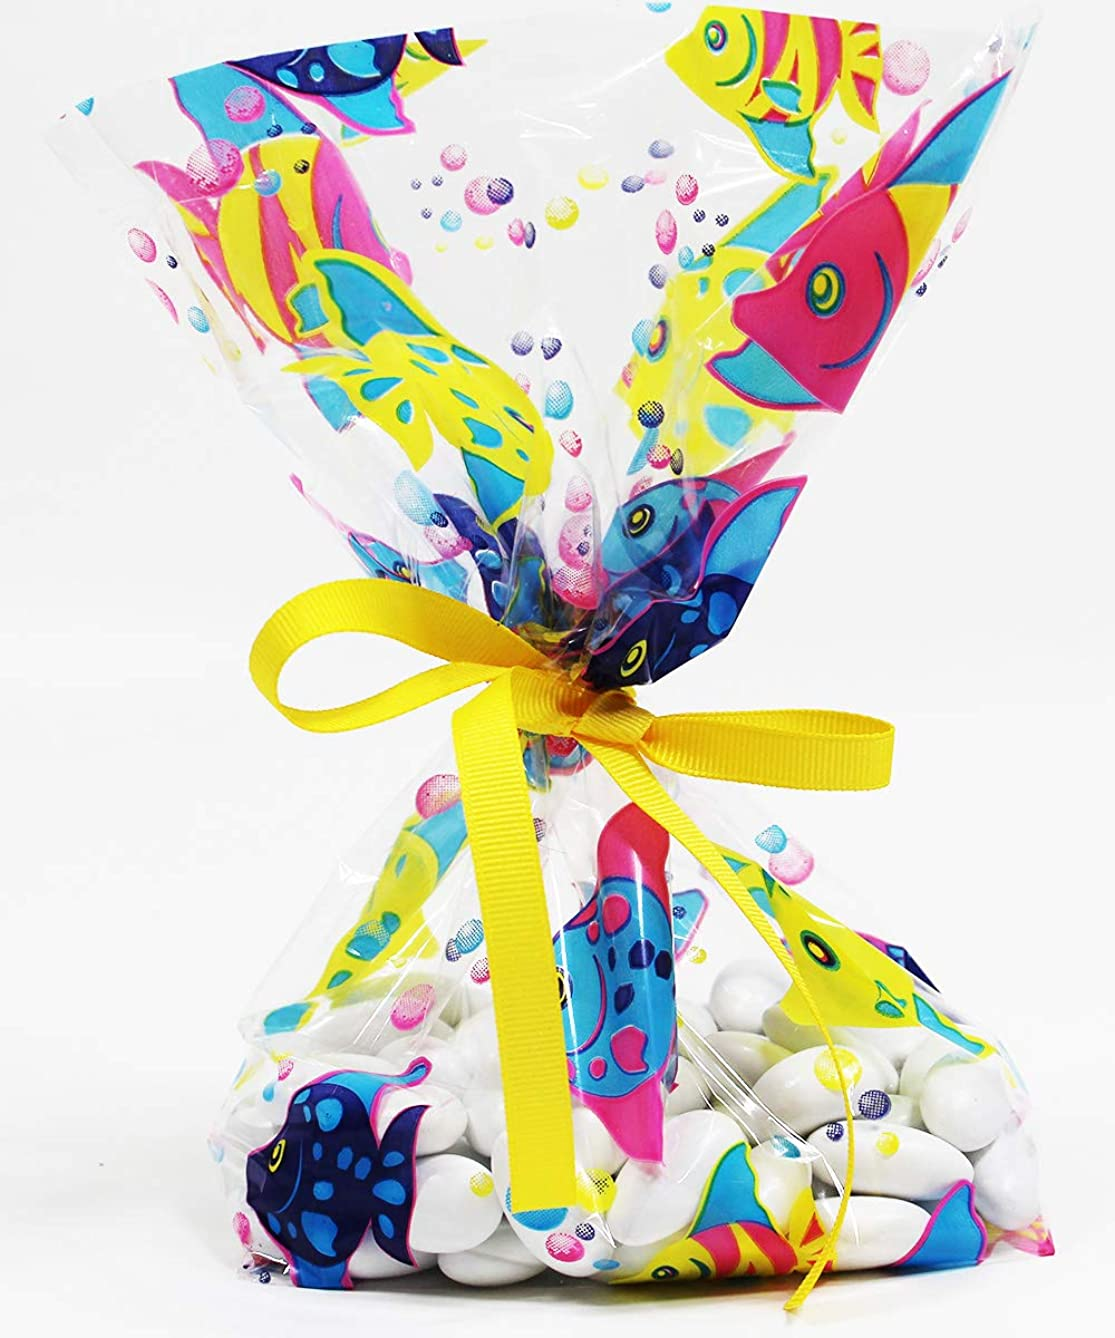 Tropical Fish Cellophane Treat Party Favor Bags with Grosgrain Ribbon Ties. Pack of 12 Large Goodie Gift Bags for Luau, Hawaiian, Kids, Boys or Girls Birthday, Baby Showers & Celebrations. Multicolor